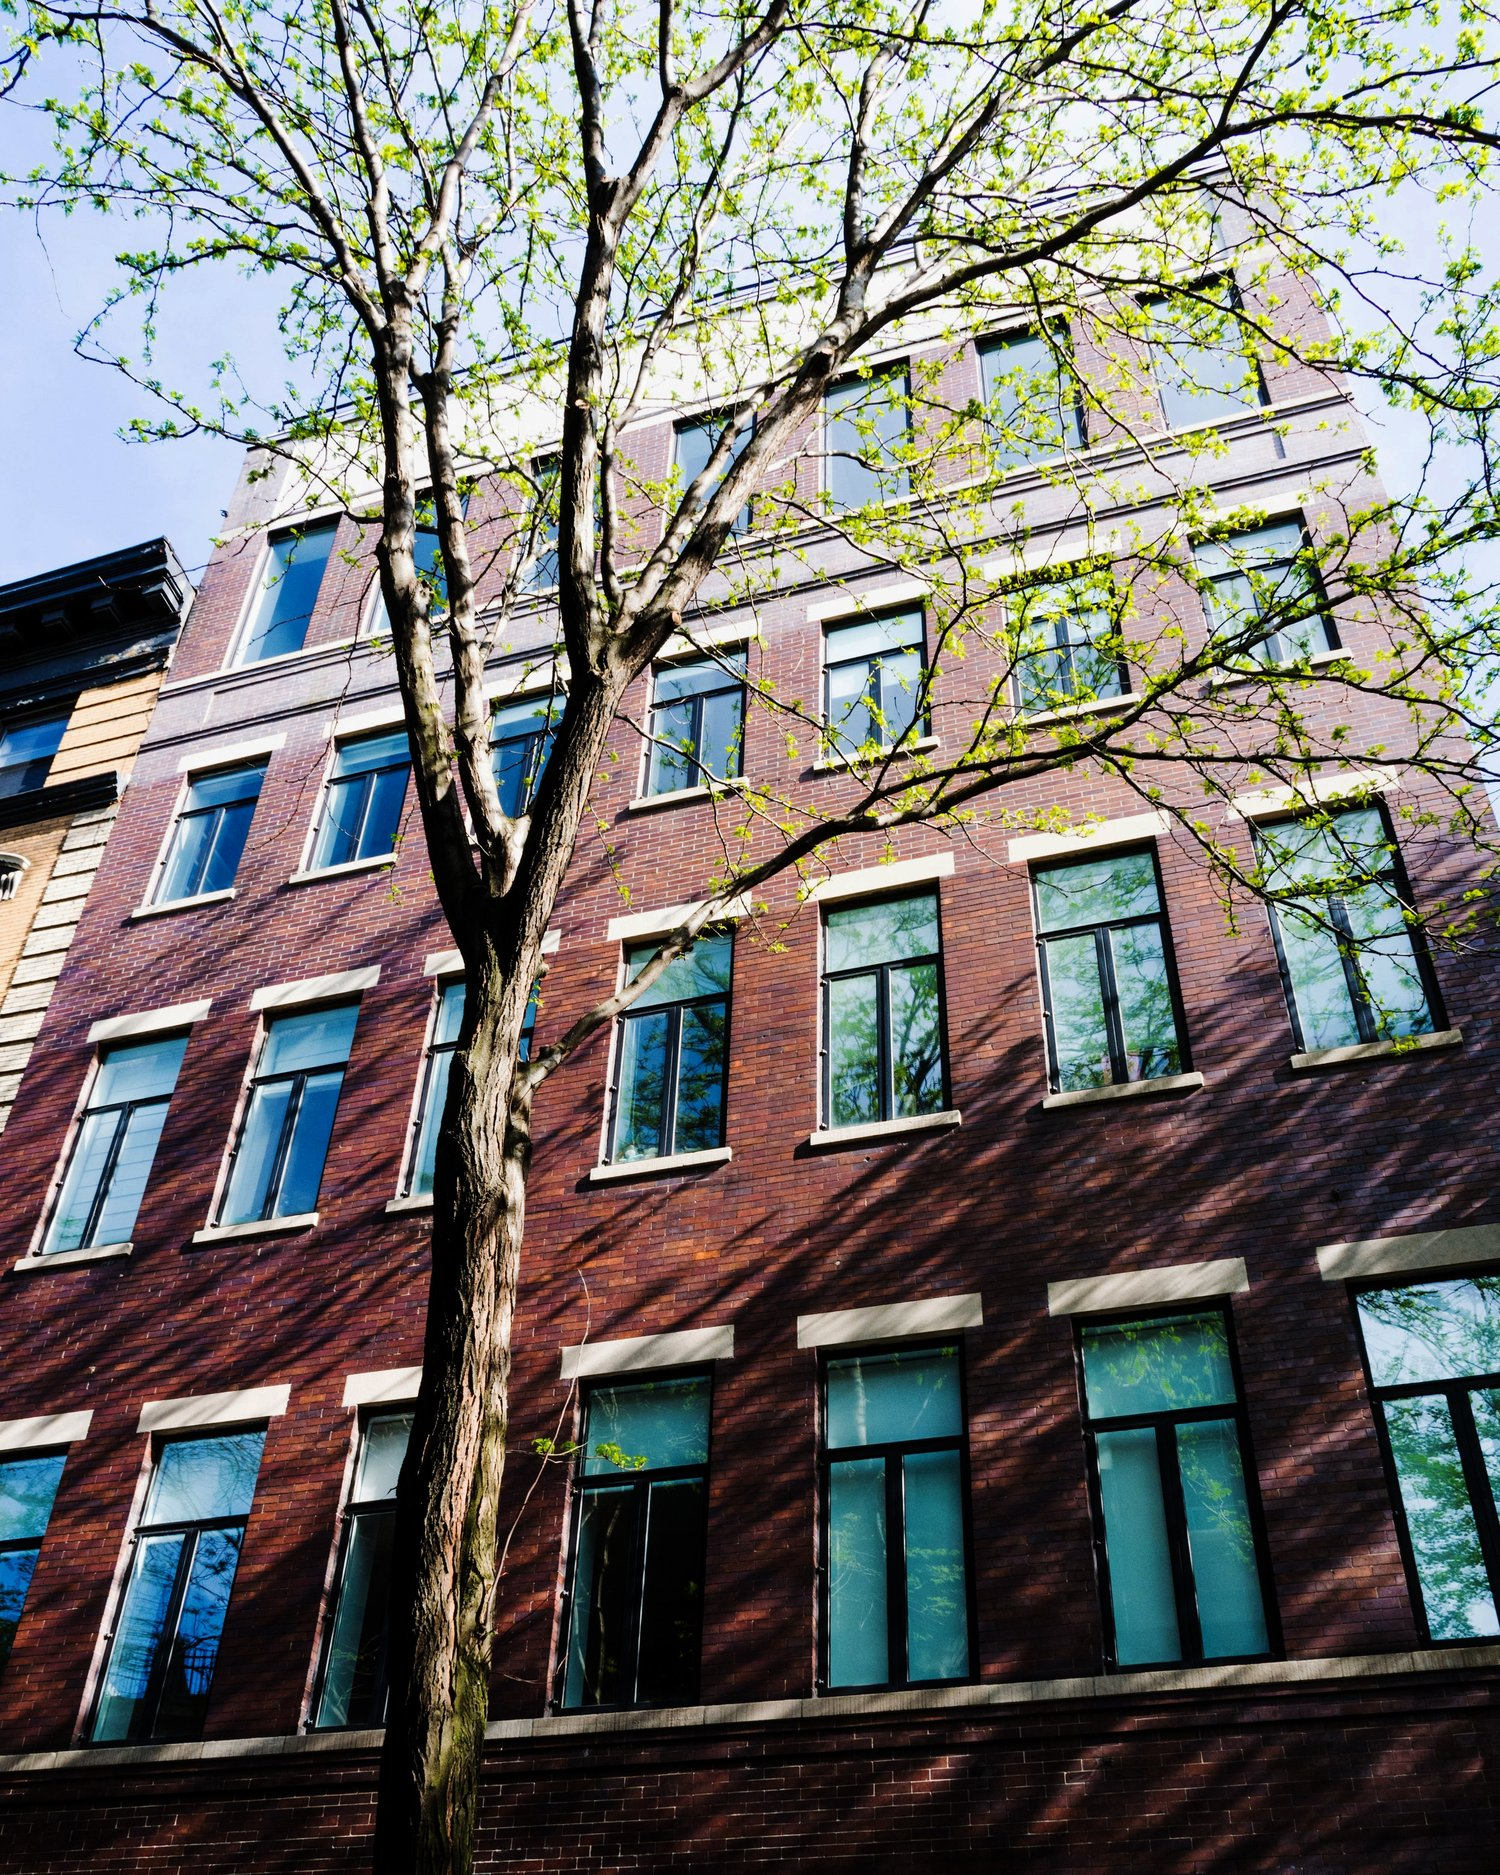 bixby how to find good short term apartment rentals in new york city